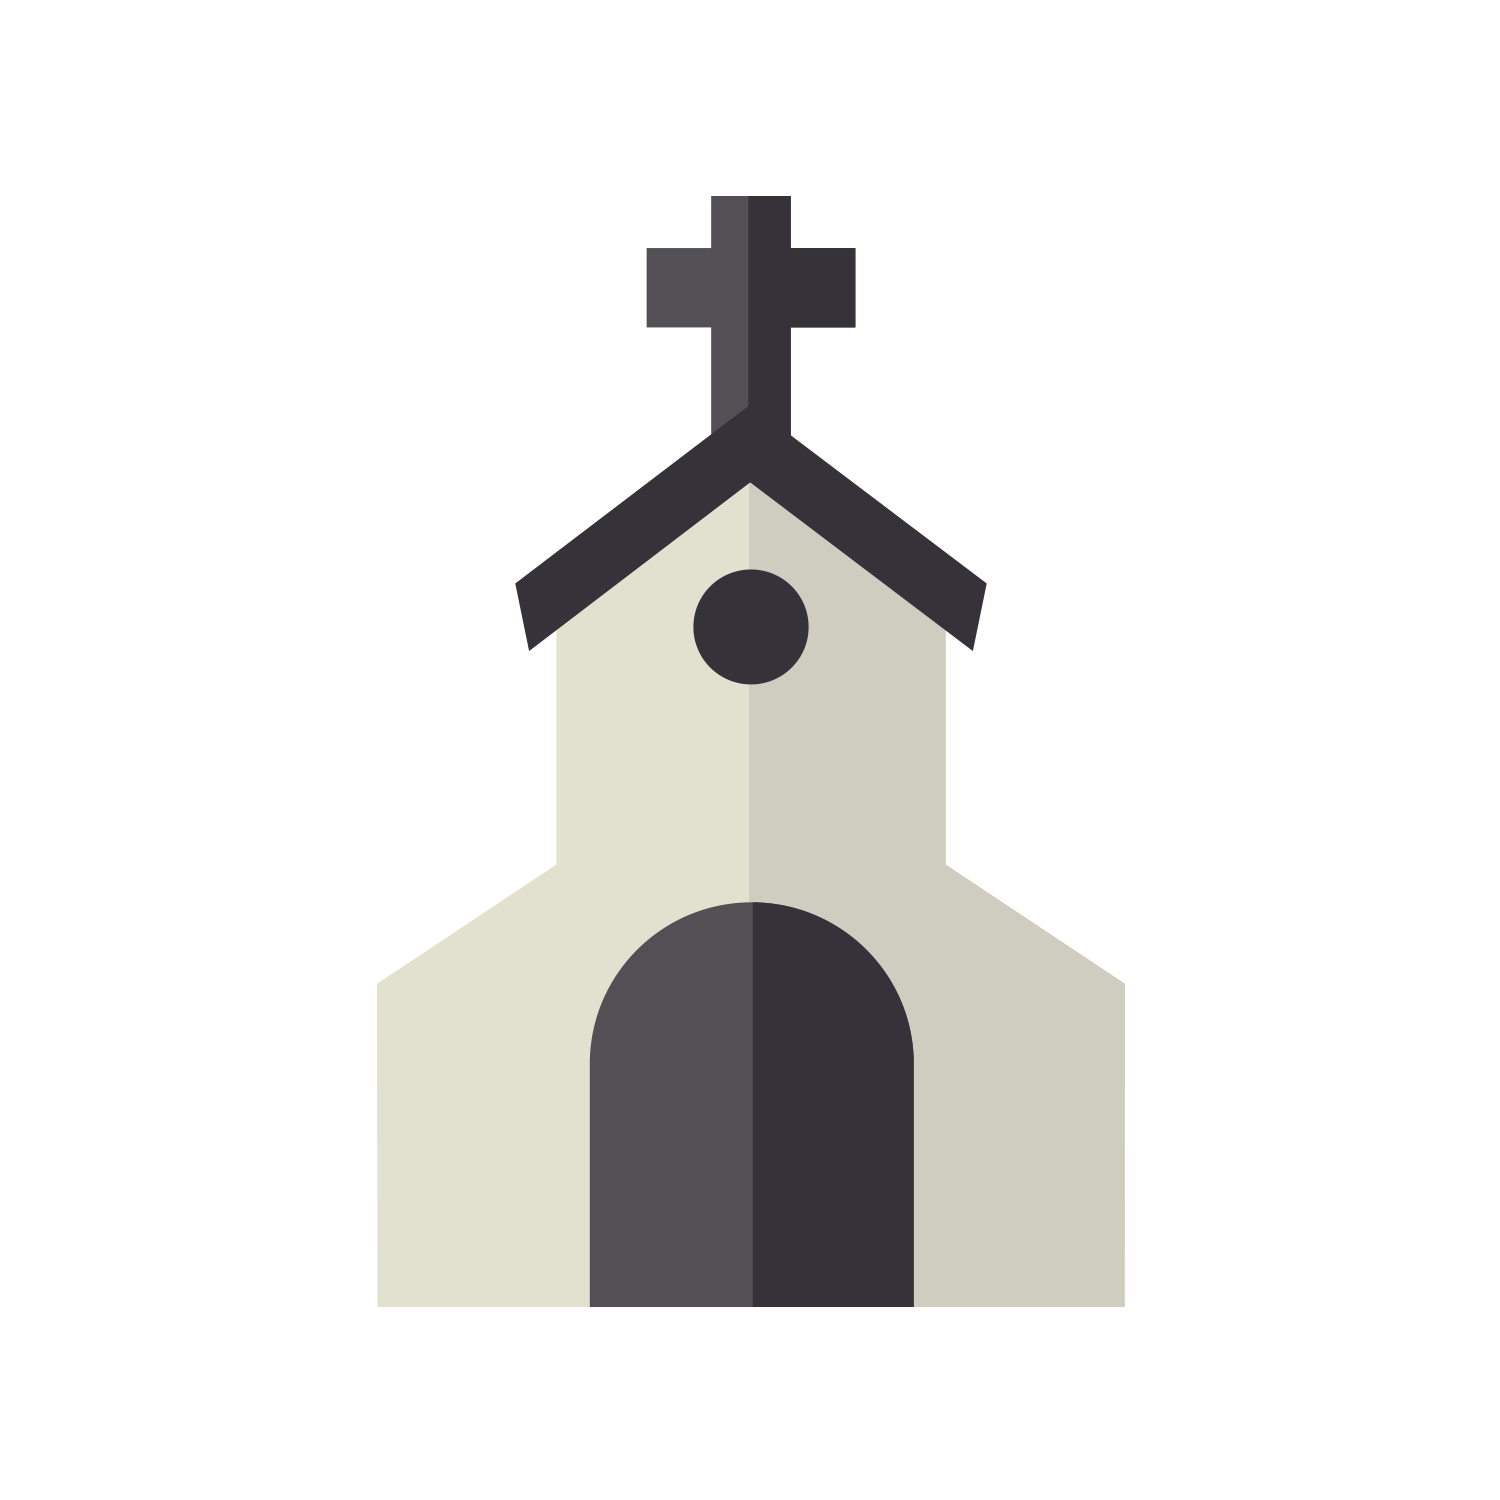 Church Icon.